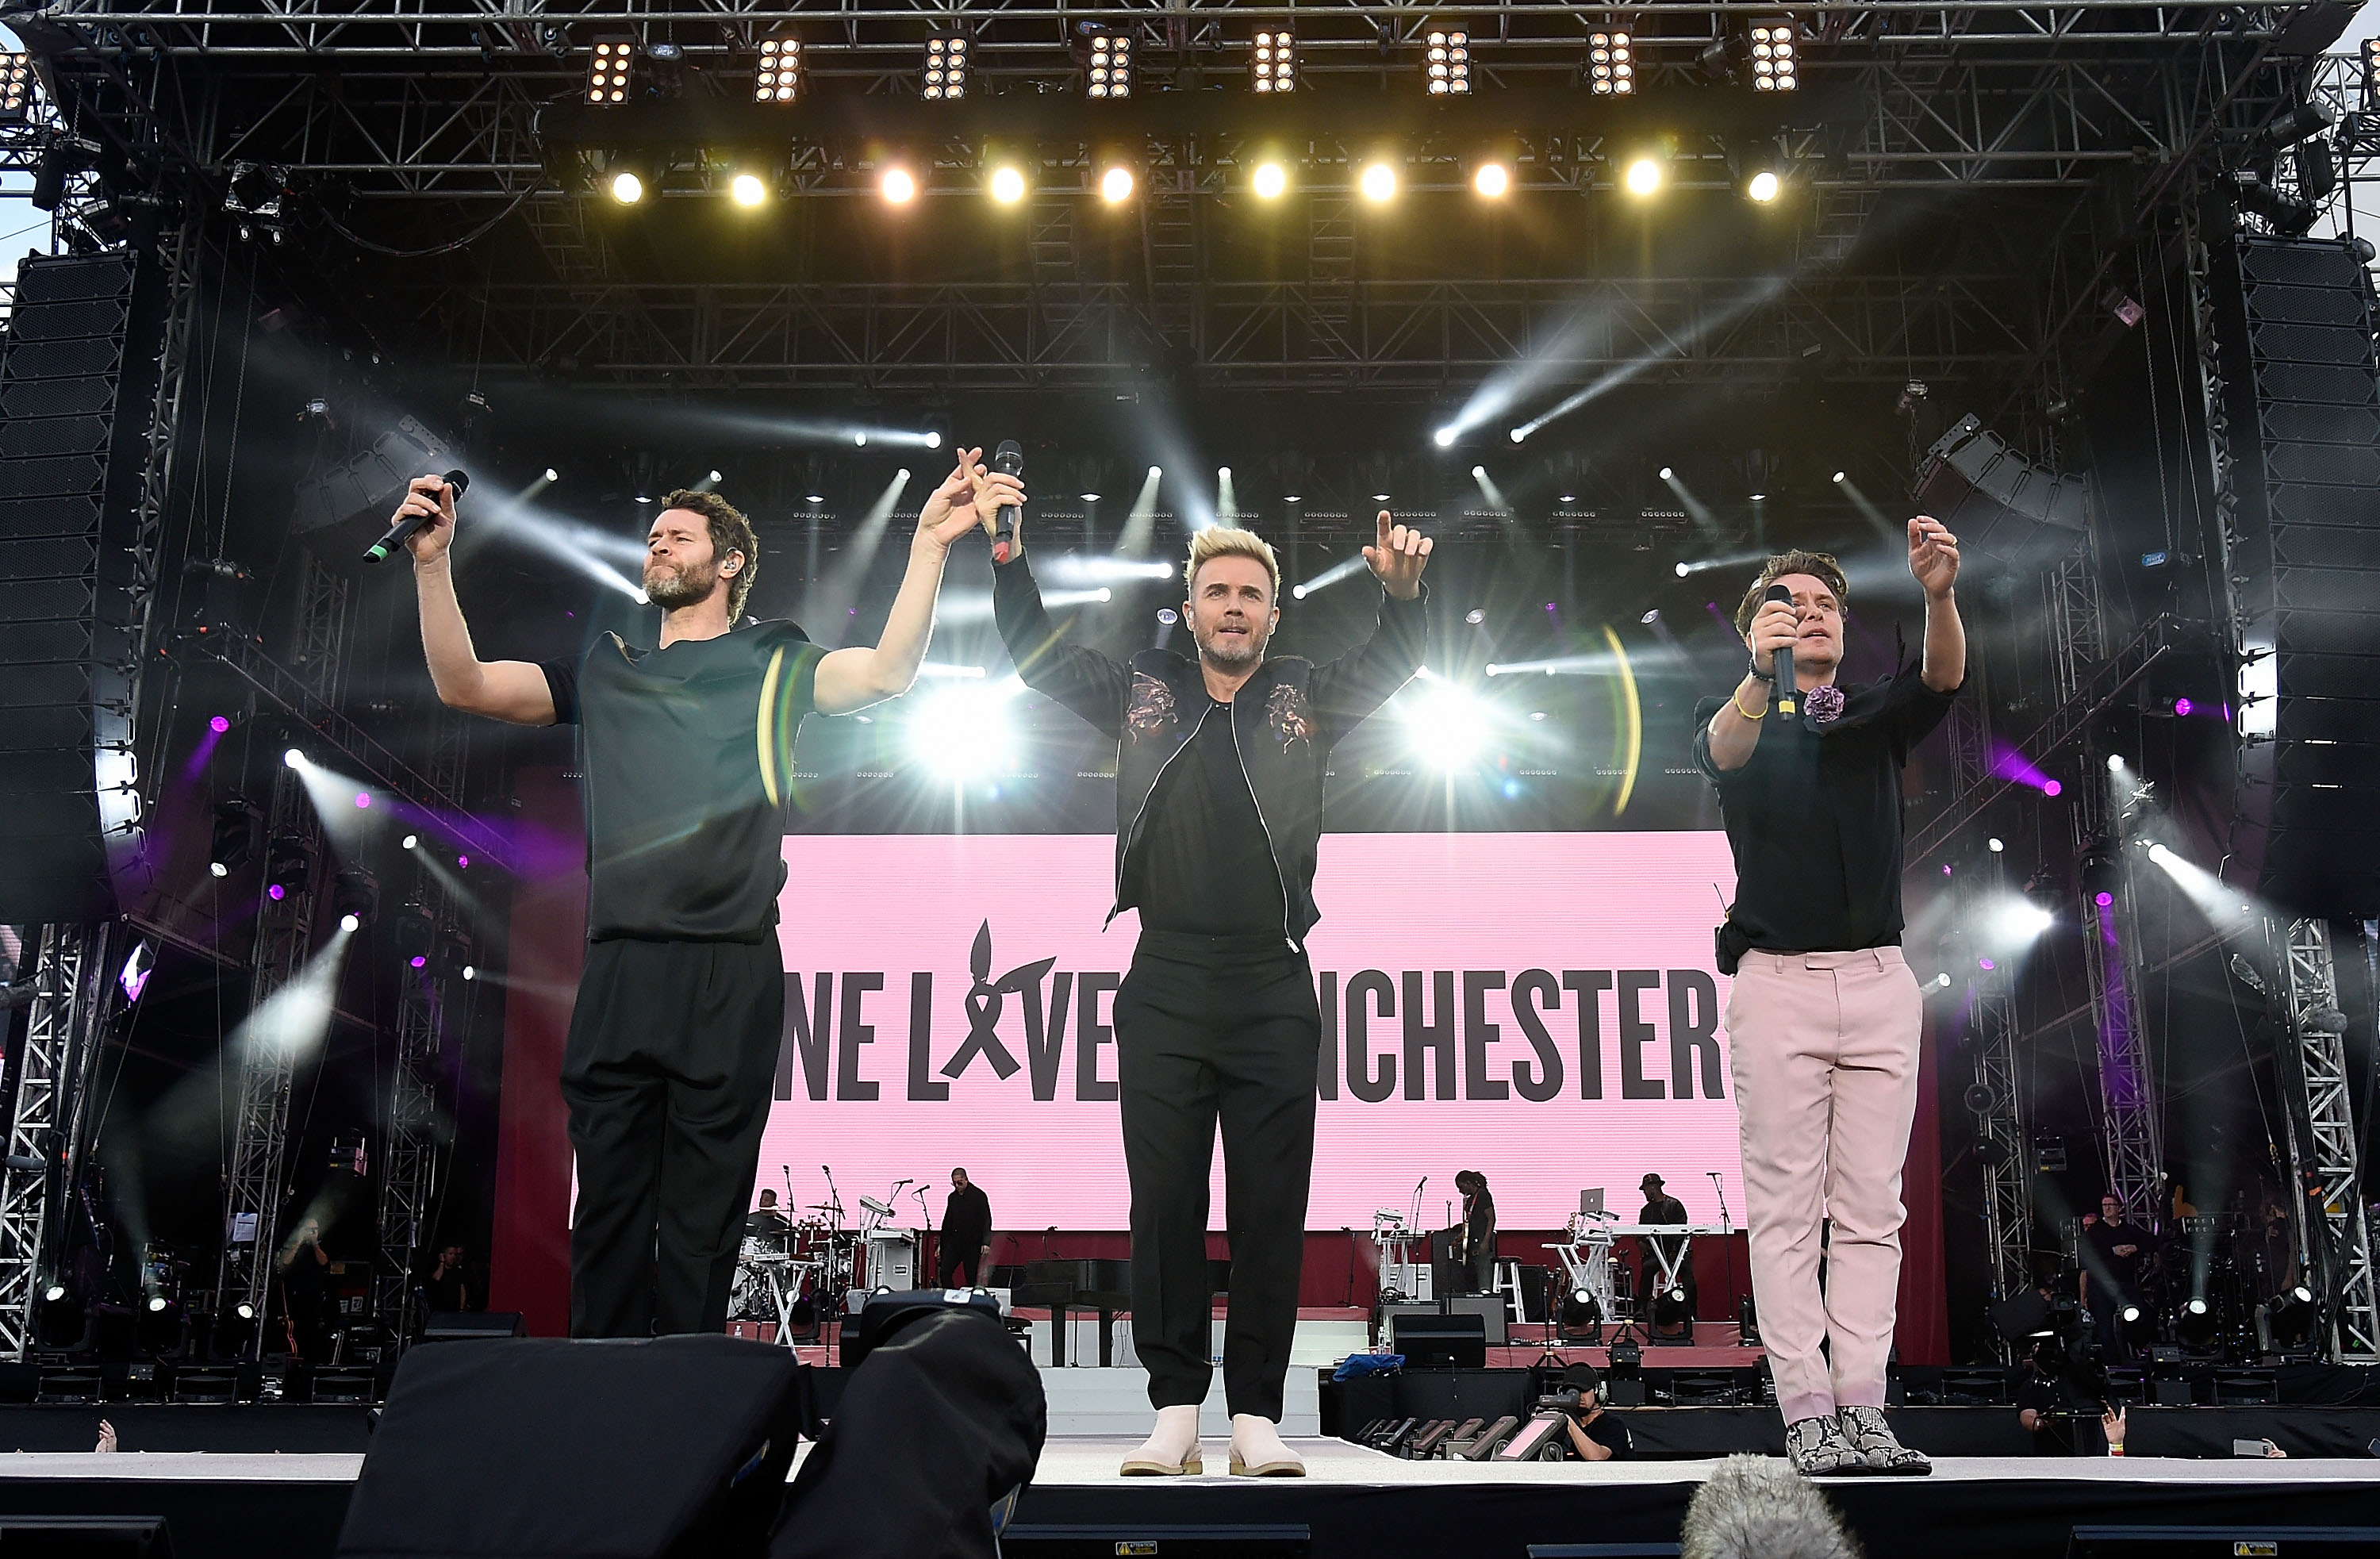 Take That live during the One Love Manchester